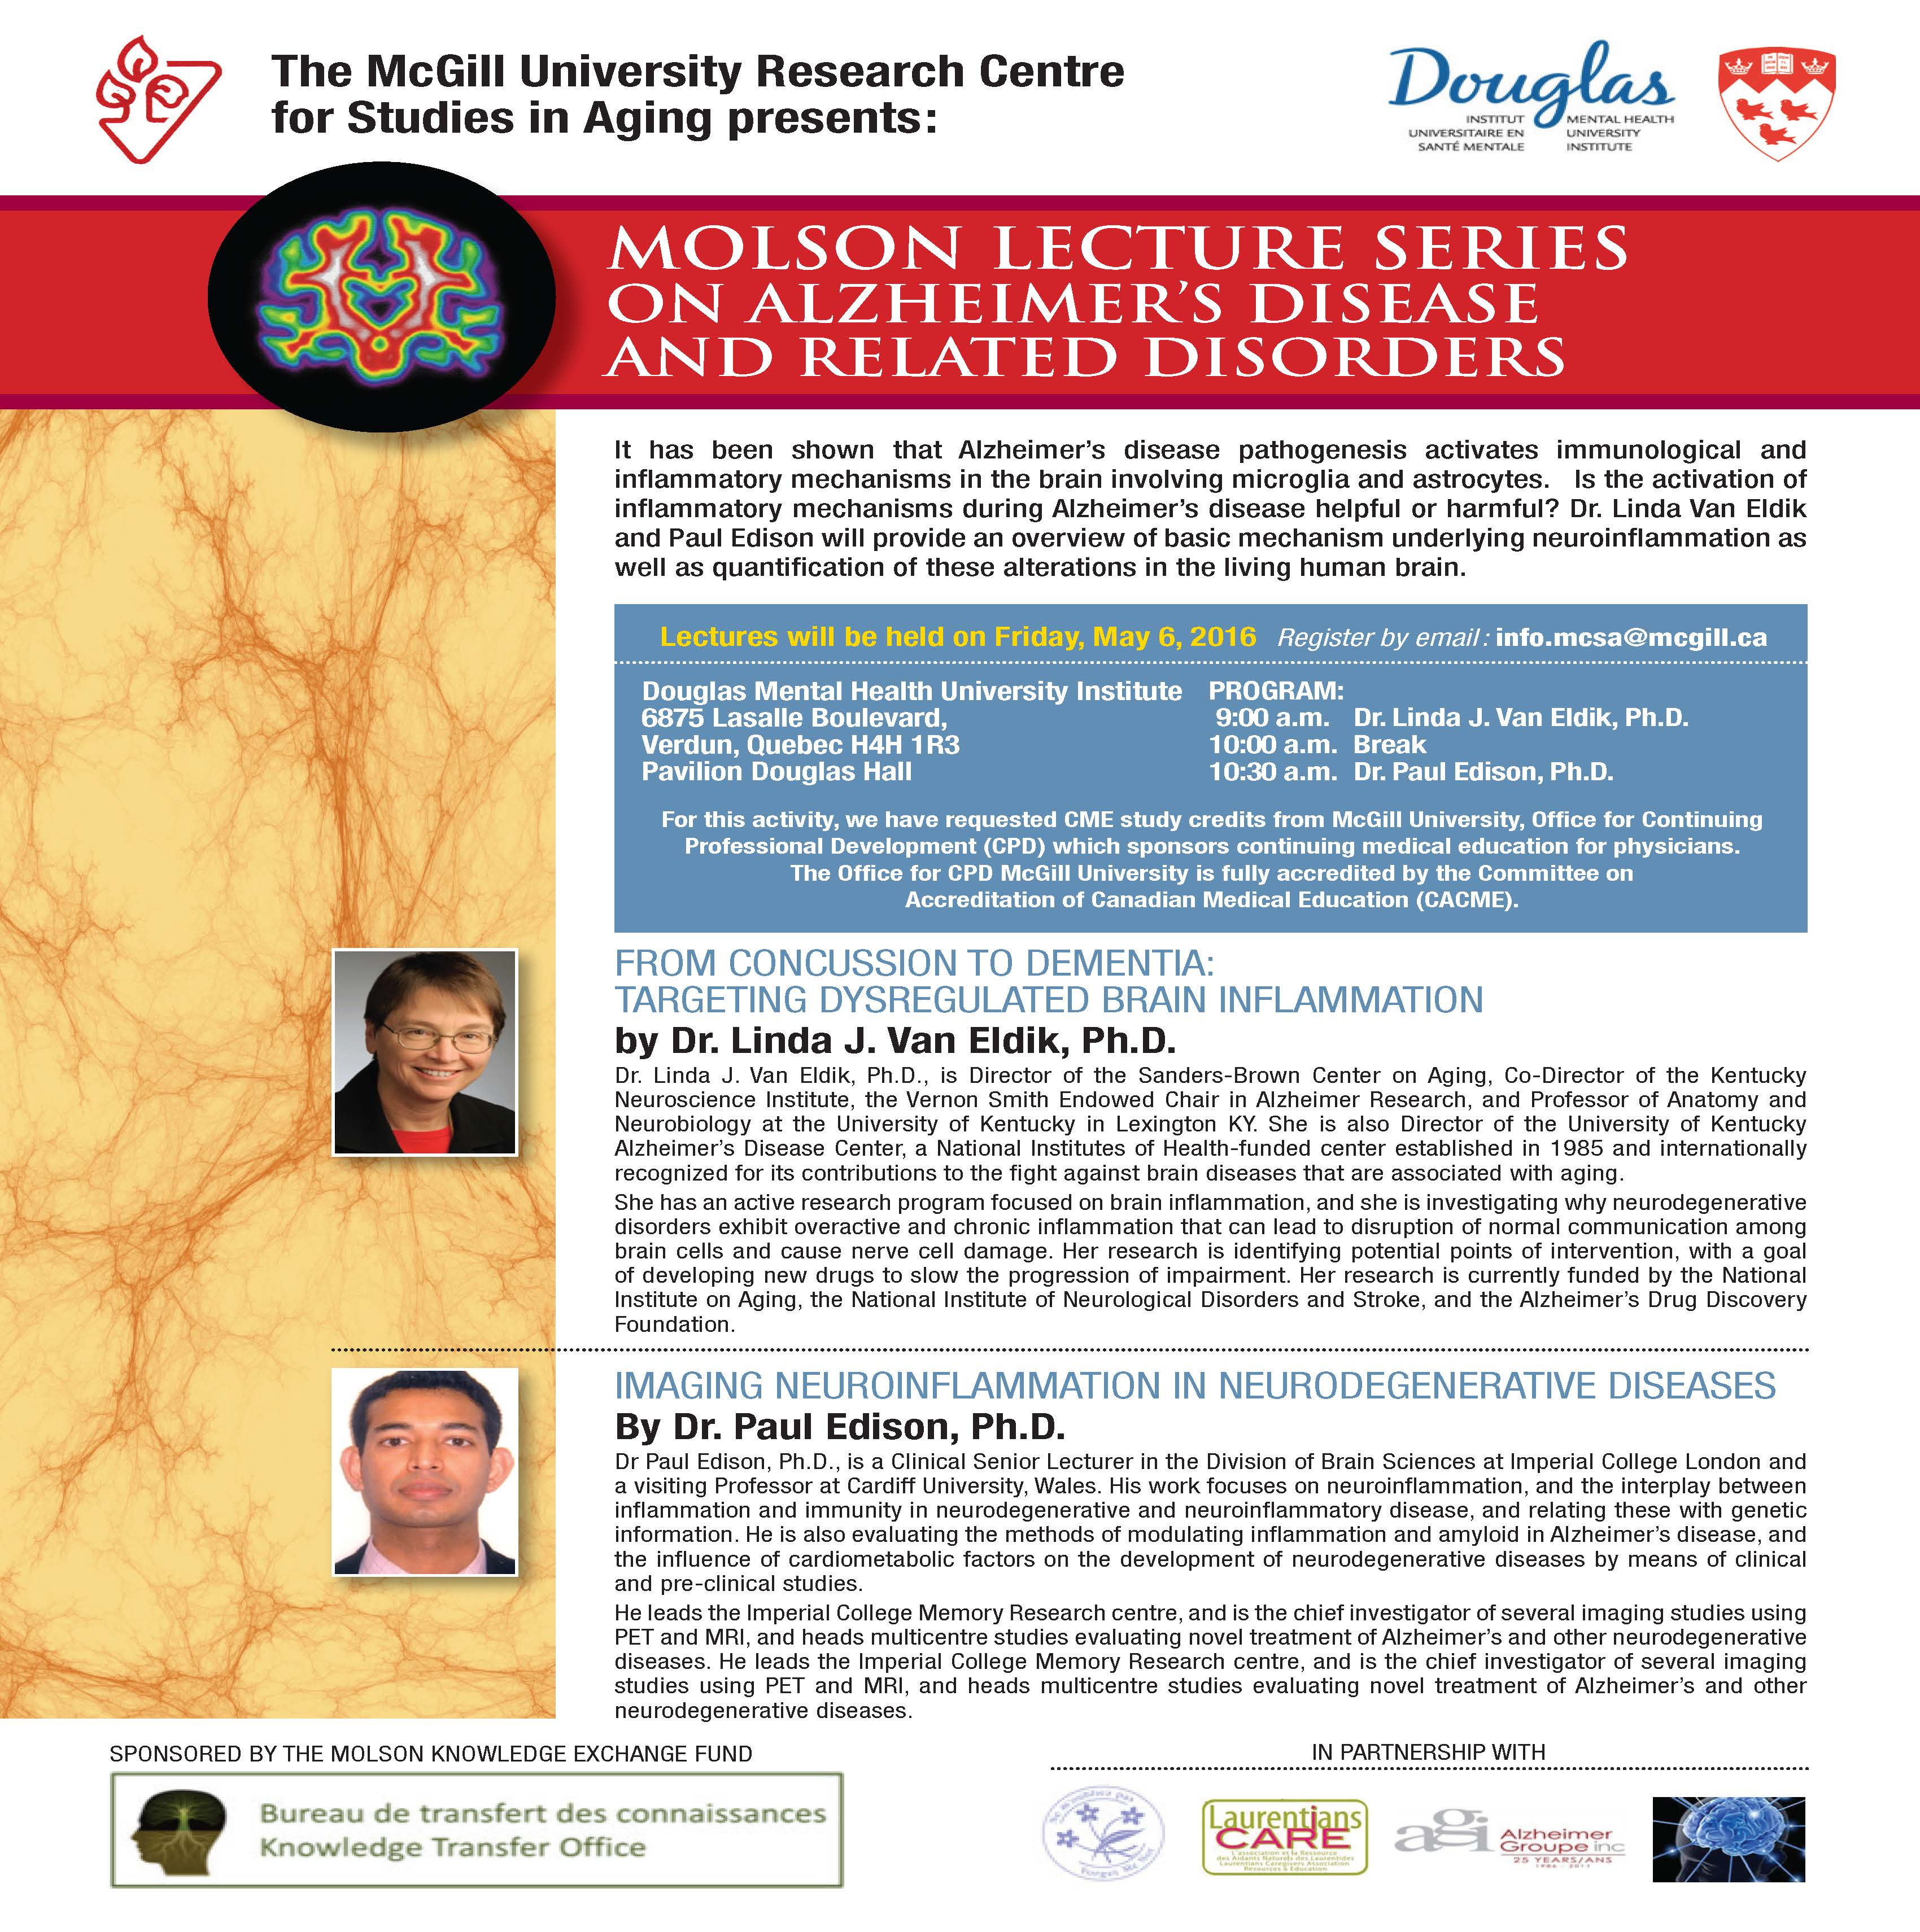 Molson Lecture Series on Alzheimer's Disease Related Disorders